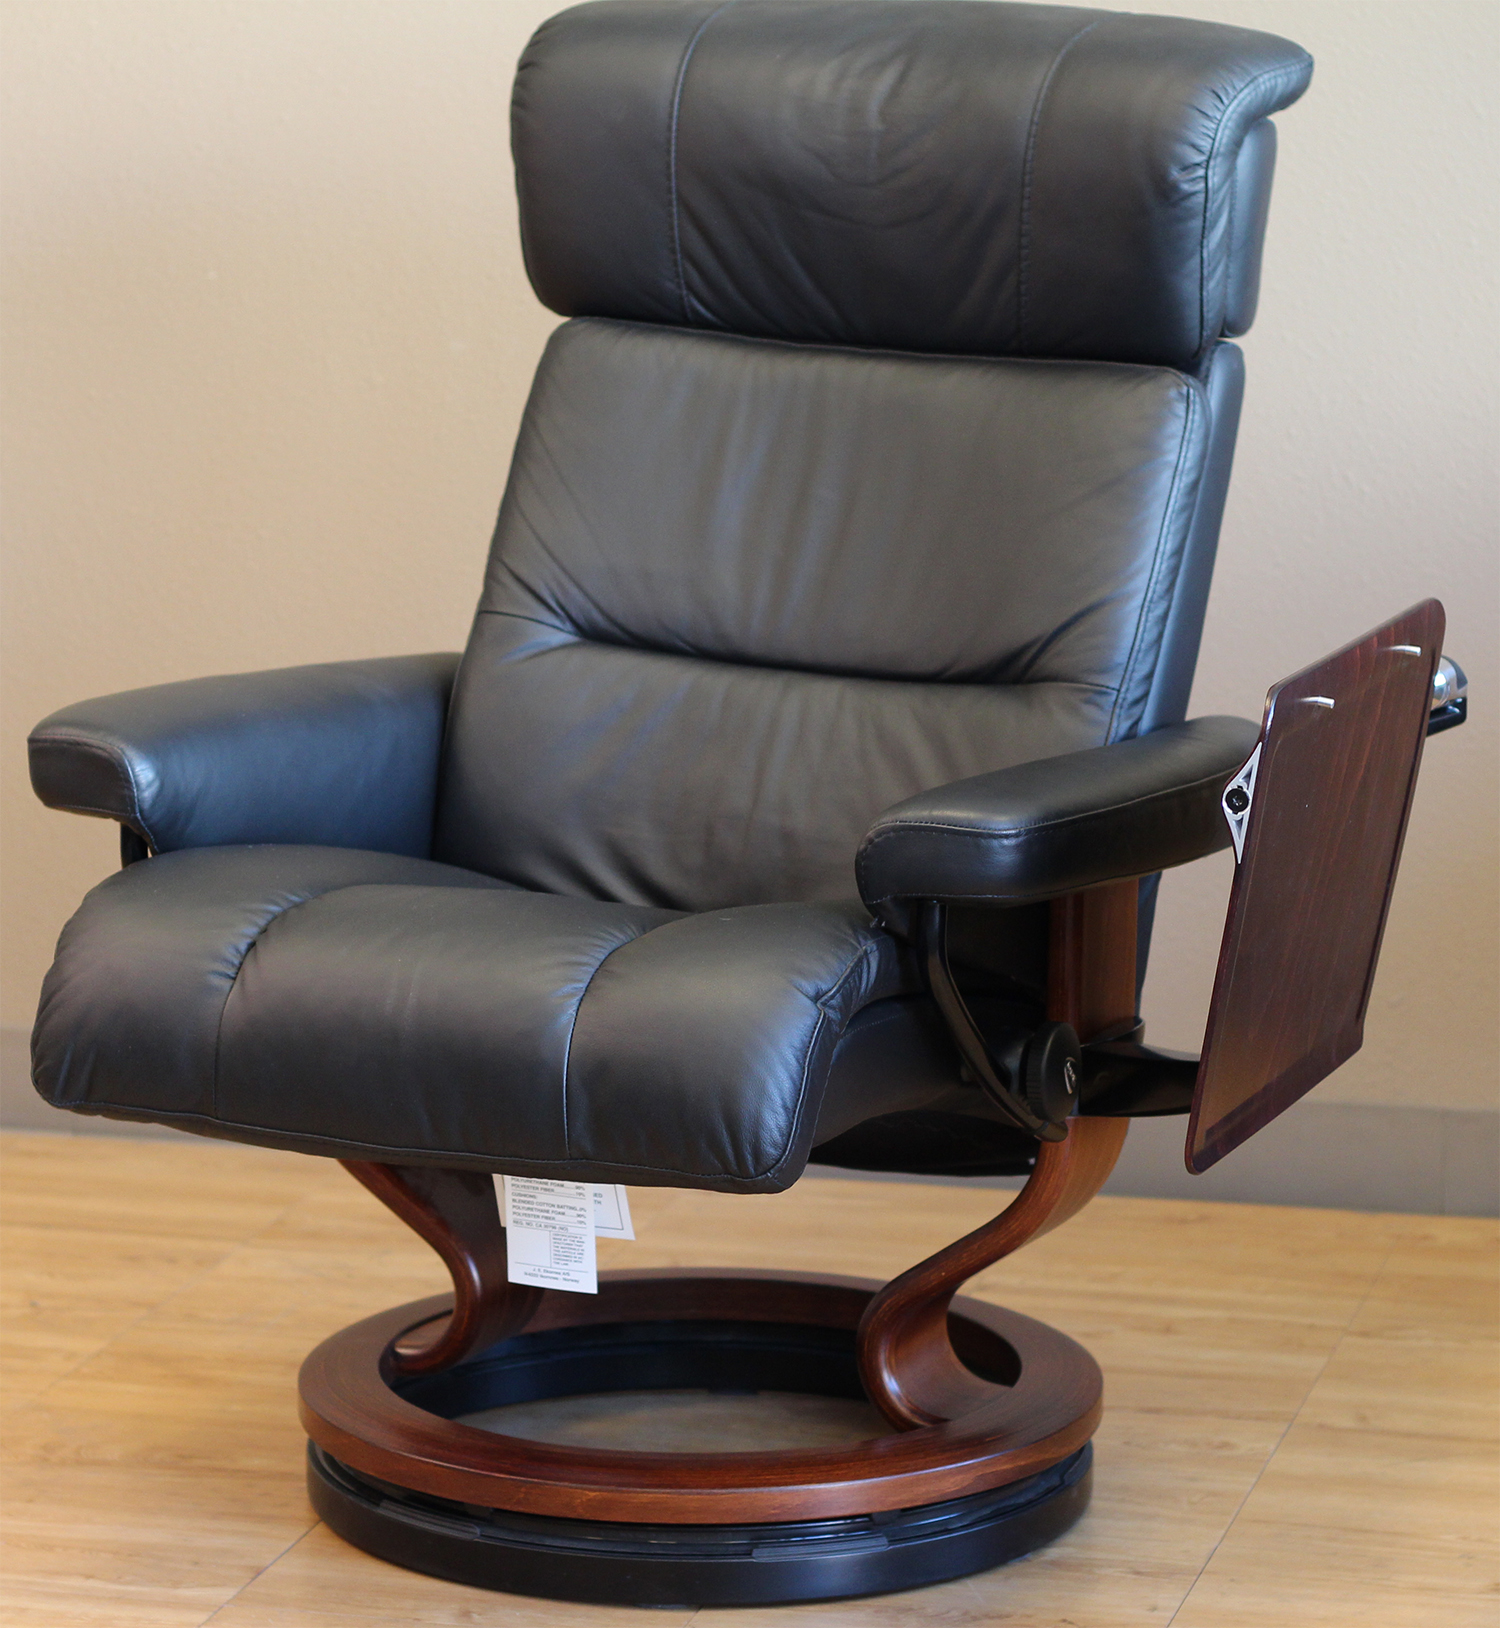 Stressless Recliner Elevator Ring For Ekornes Chairs